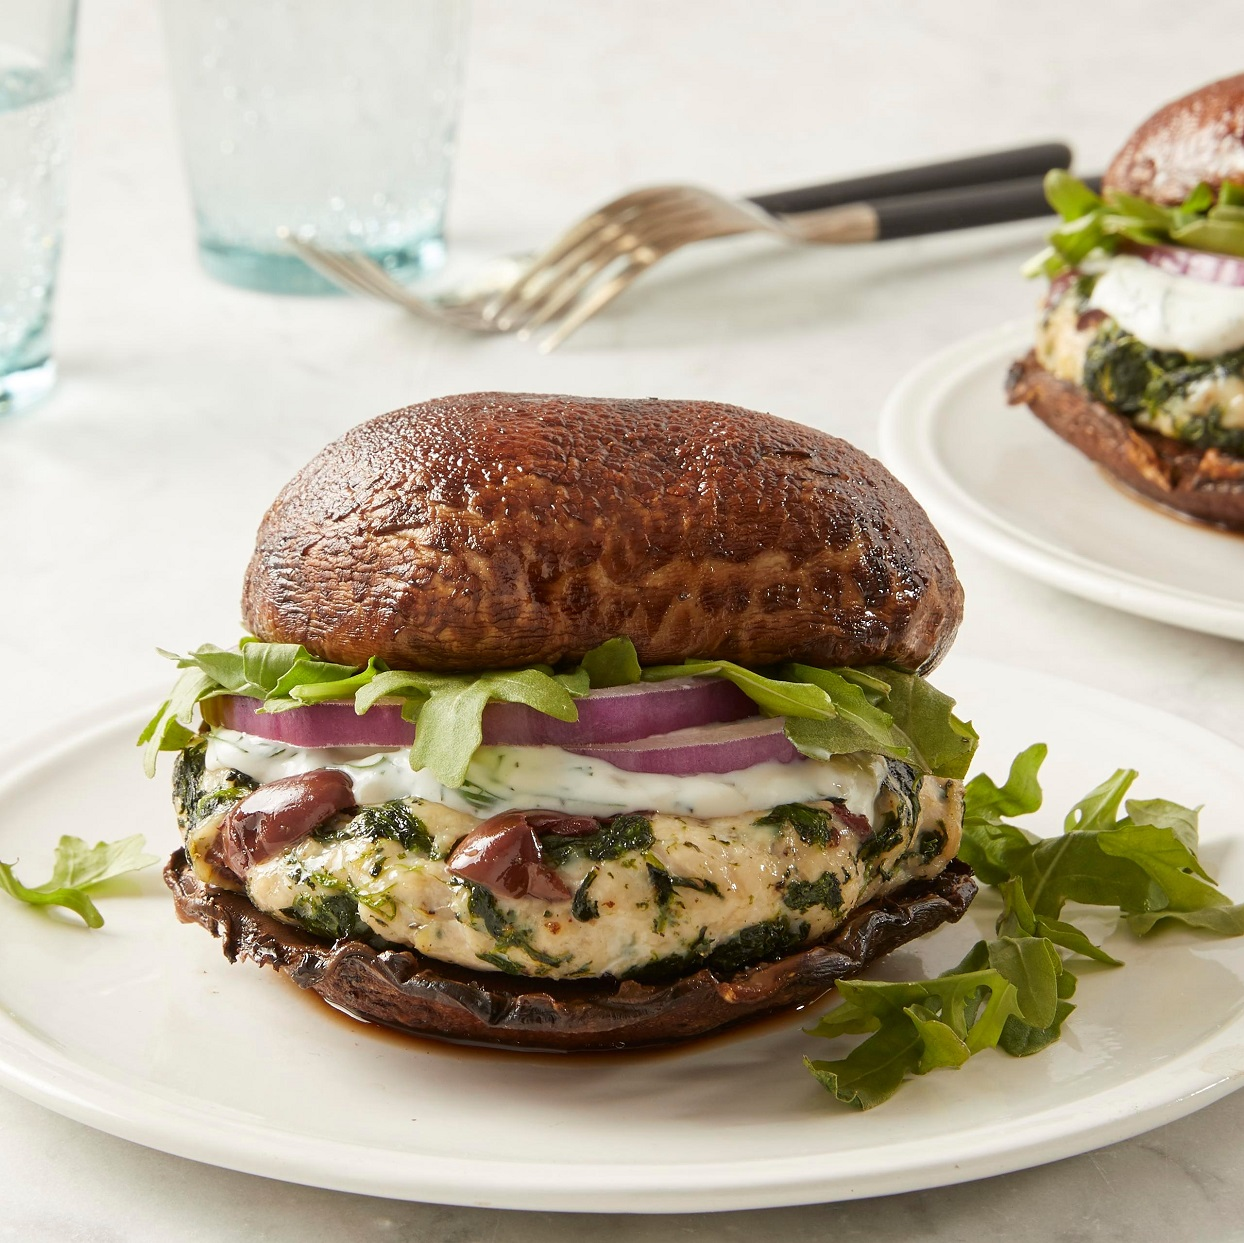 This low-carb burger replaces the typical bun with roasted portobello mushroom caps. Creamy tzatziki and crisp sliced red onion add texture and flavor to this easy Greek-inspired burger recipe. Source: EatingWell.com, January 2020